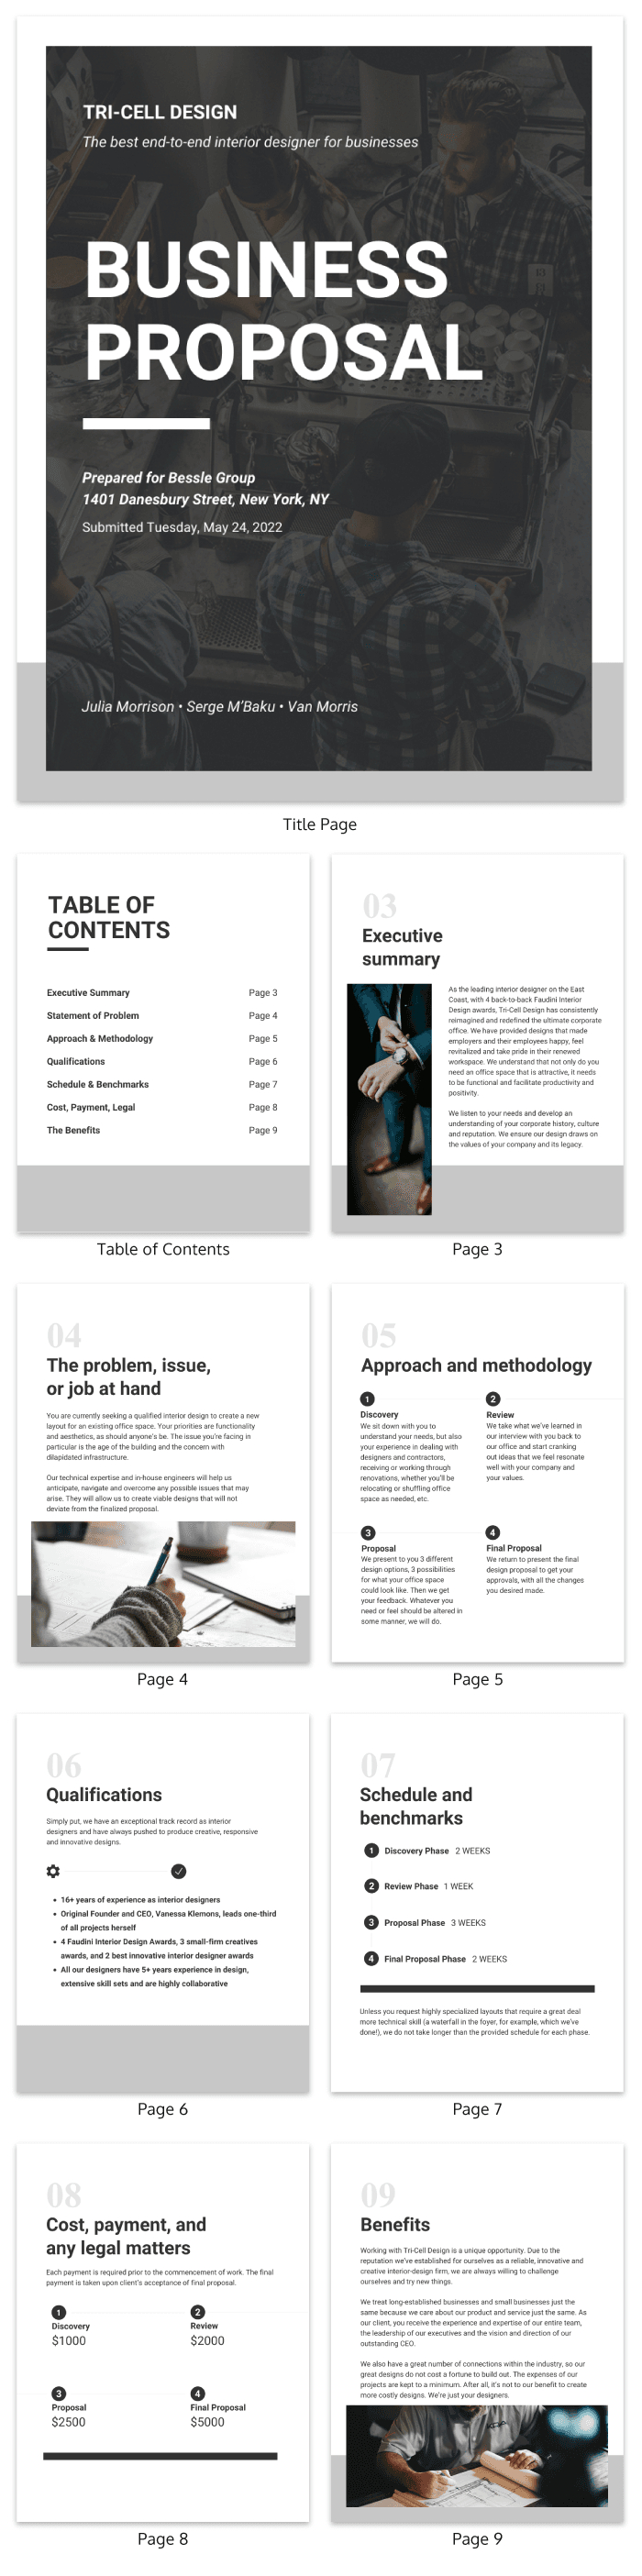 How To Create A Business Plan To Inspire Confidence In Investors With Business Plan Template Reviews